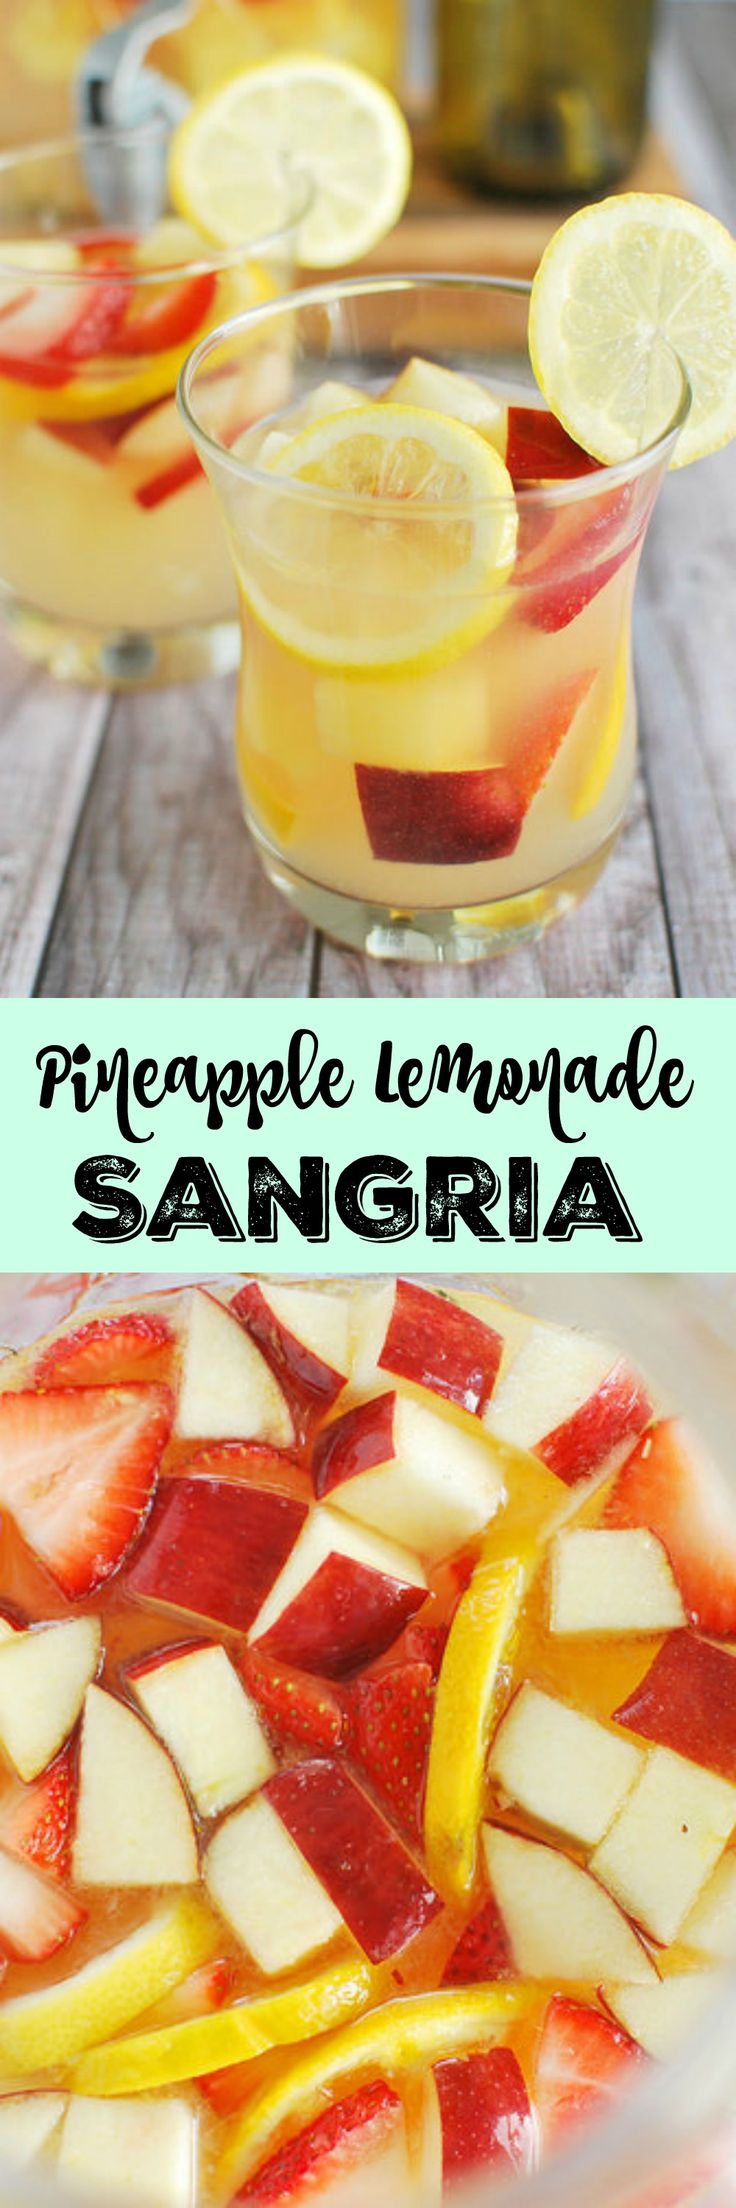 Pineapple Lemonade Sangria